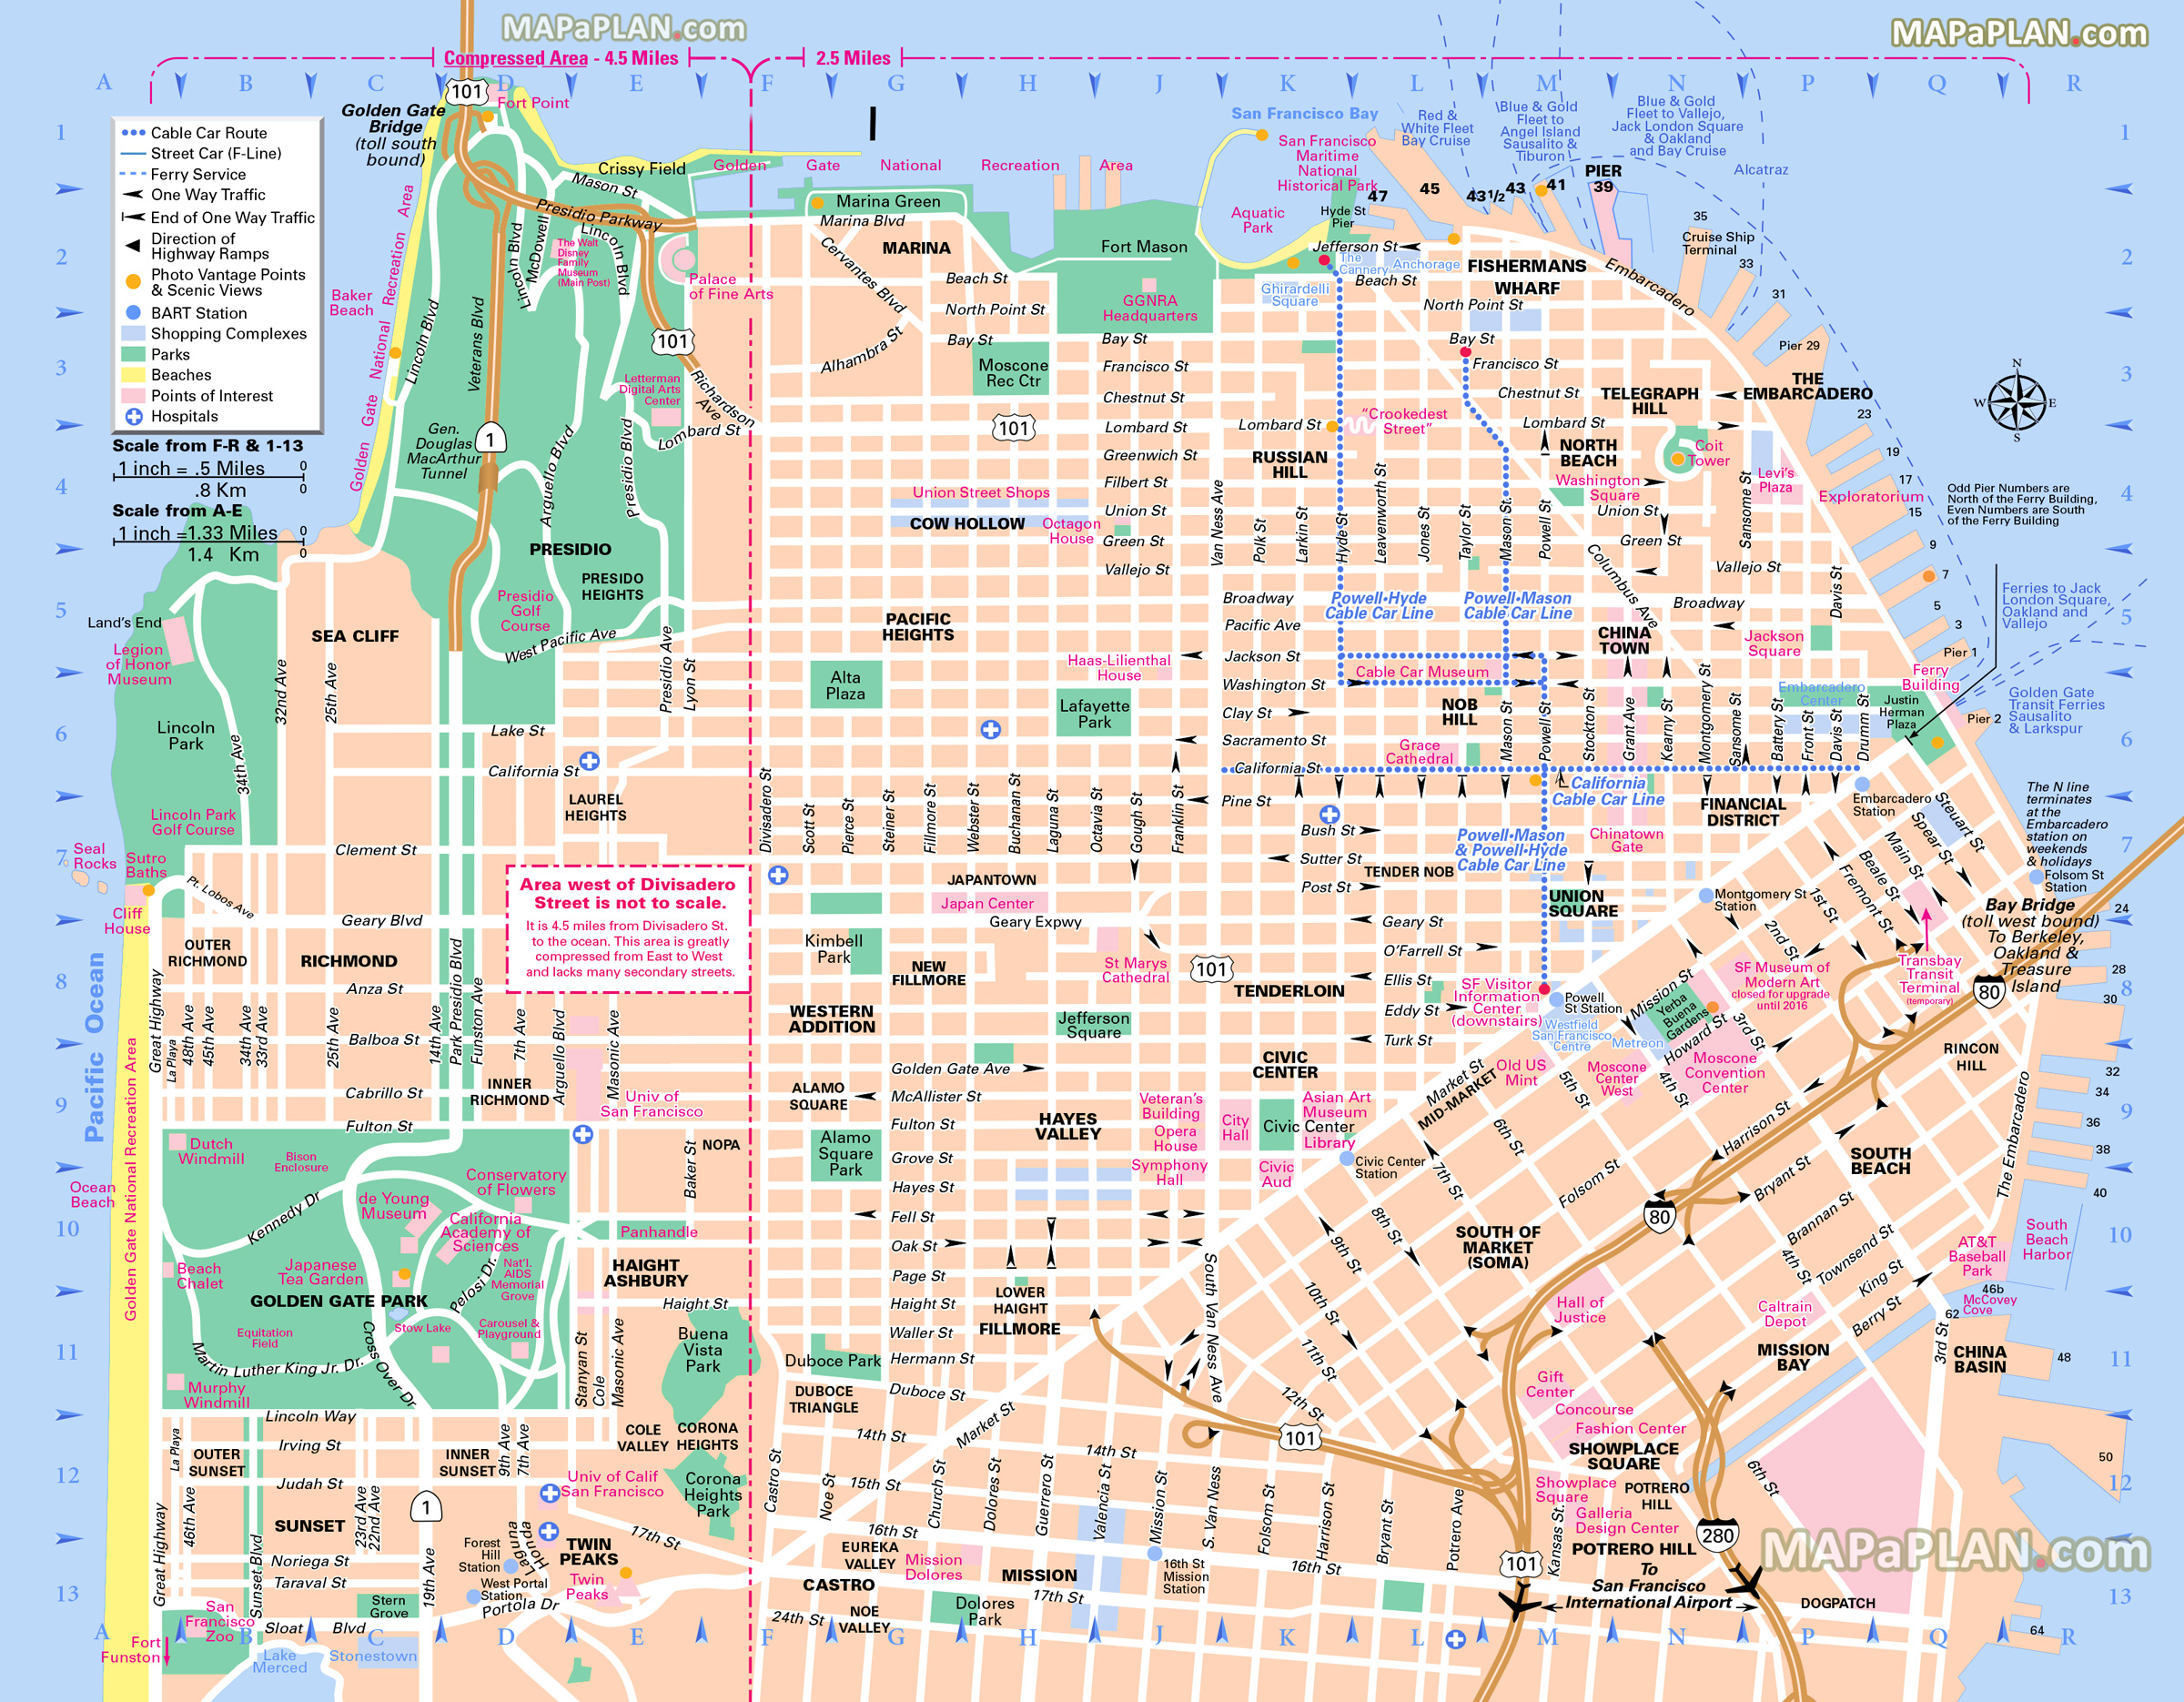 San Francisco Maps - Top Tourist Attractions - Free, Printable City - Printable Street Maps Free